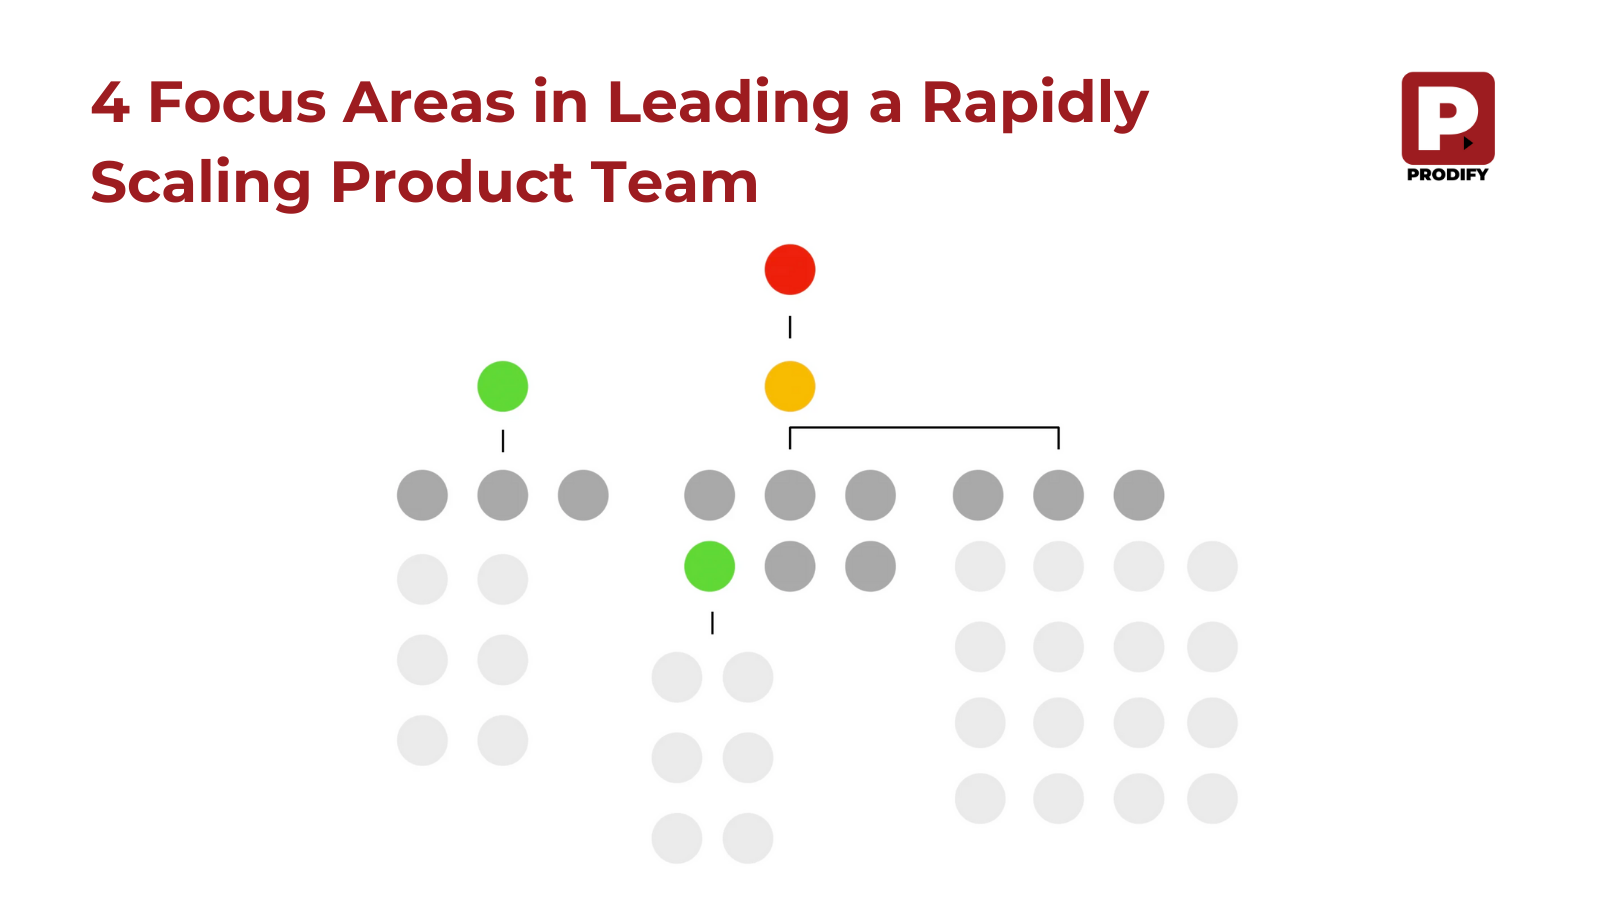 4 Focus Areas in Leading a Rapidly Scaling Product Team